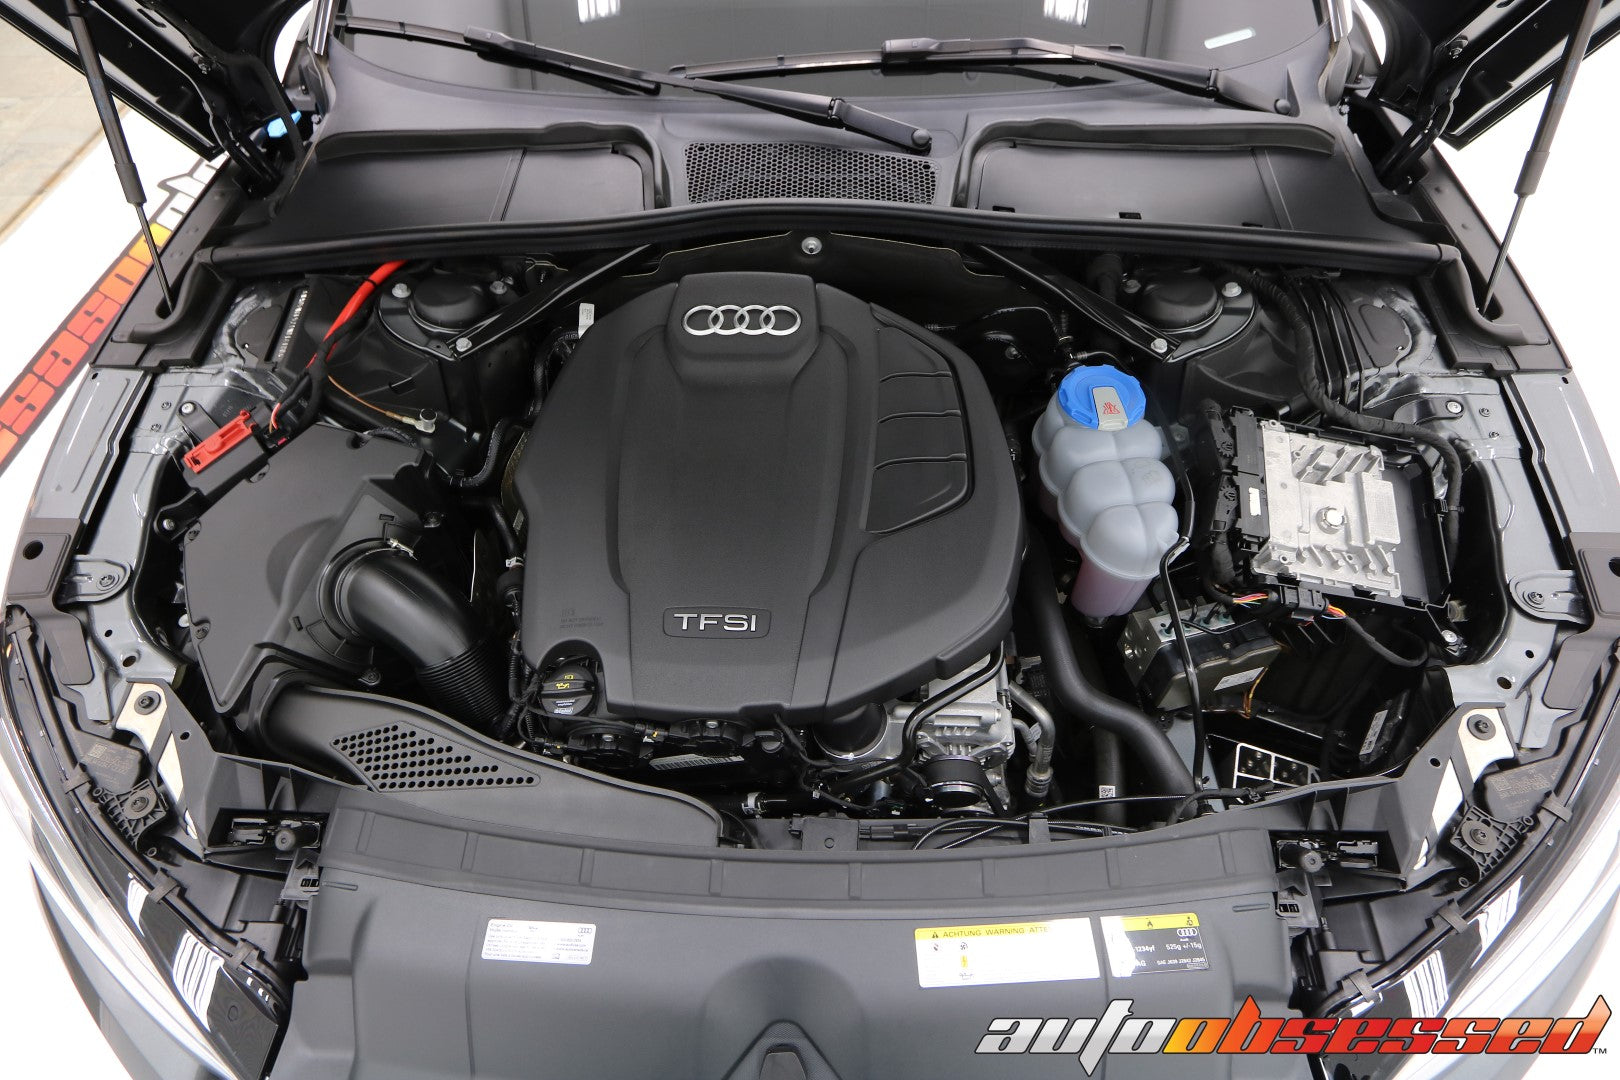 2020 Audi S5 Engine Bay Detailing - Auto Obsessed